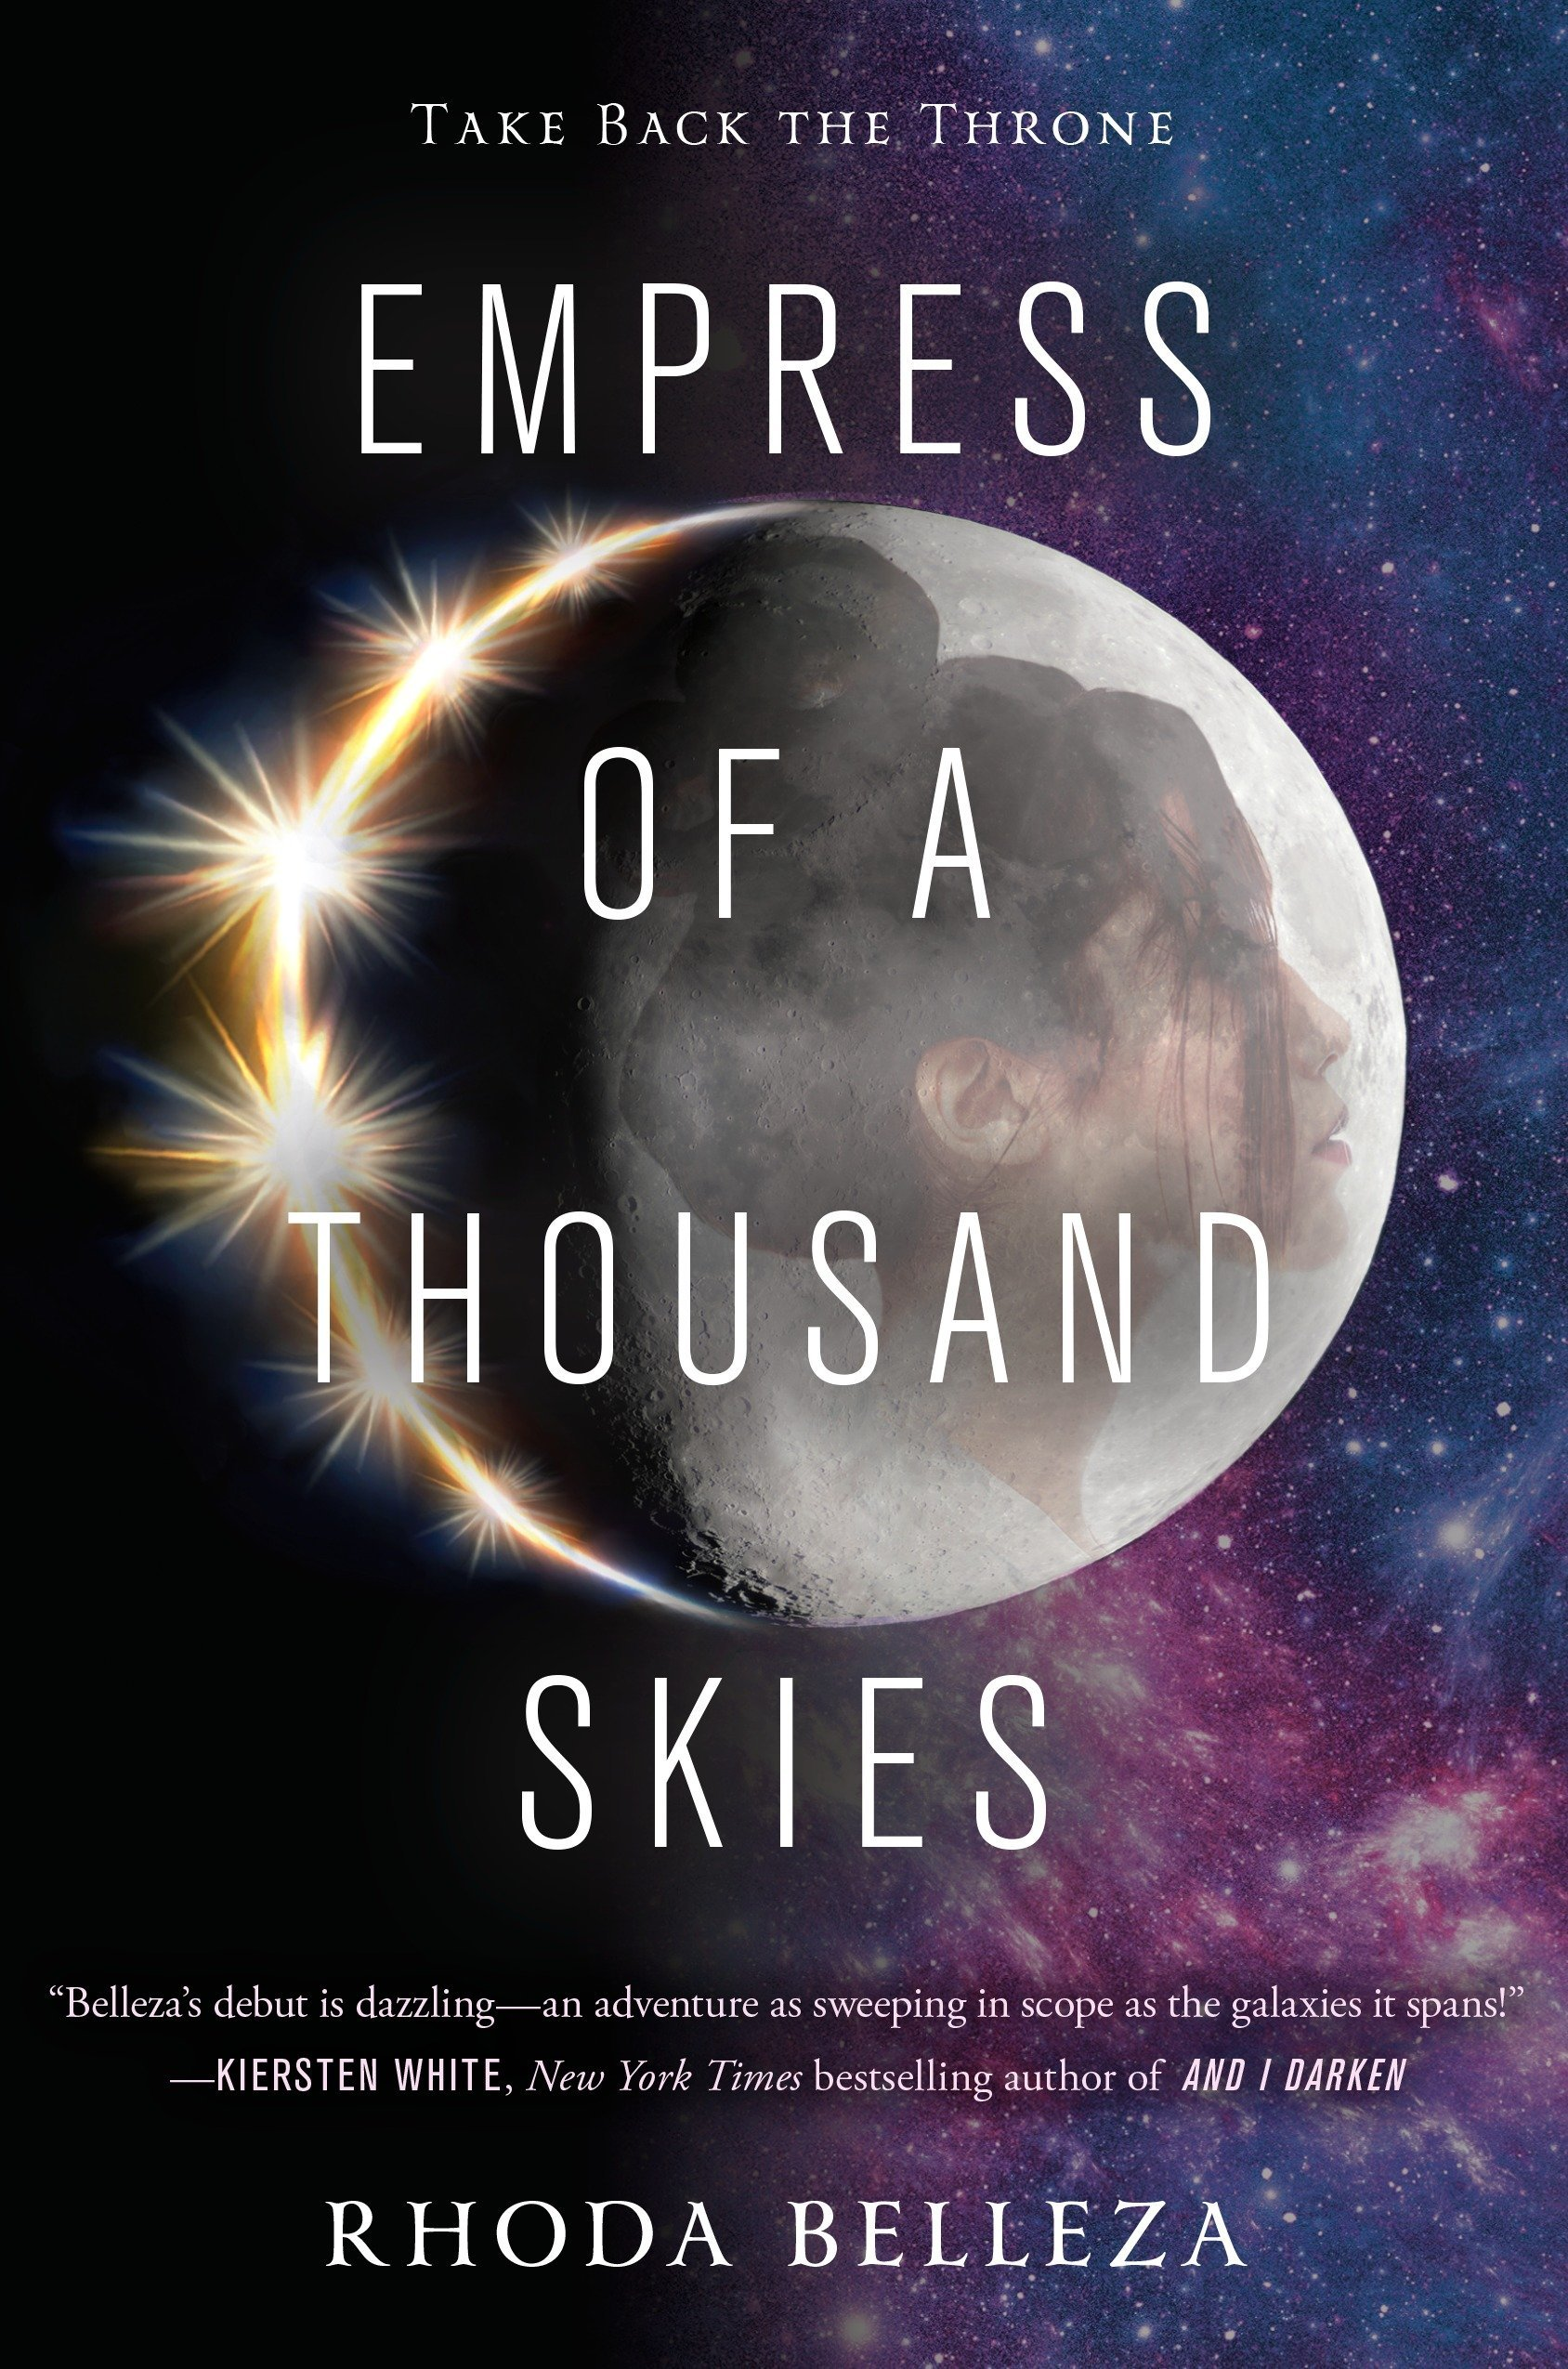 Image result for empress of a thousand skies by rhoda belleza